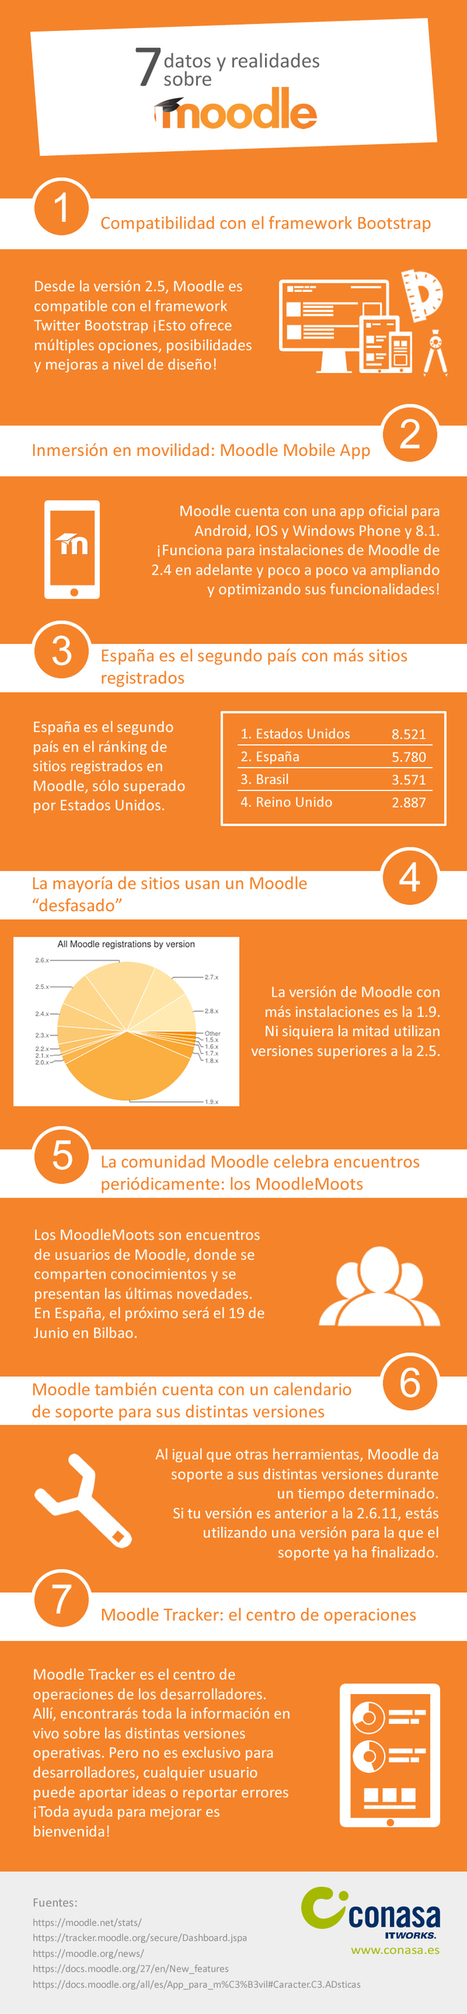 7 datos y realidades sobre Moodle que es interesante conocer | Moodle and Web 2.0 | Scoop.it